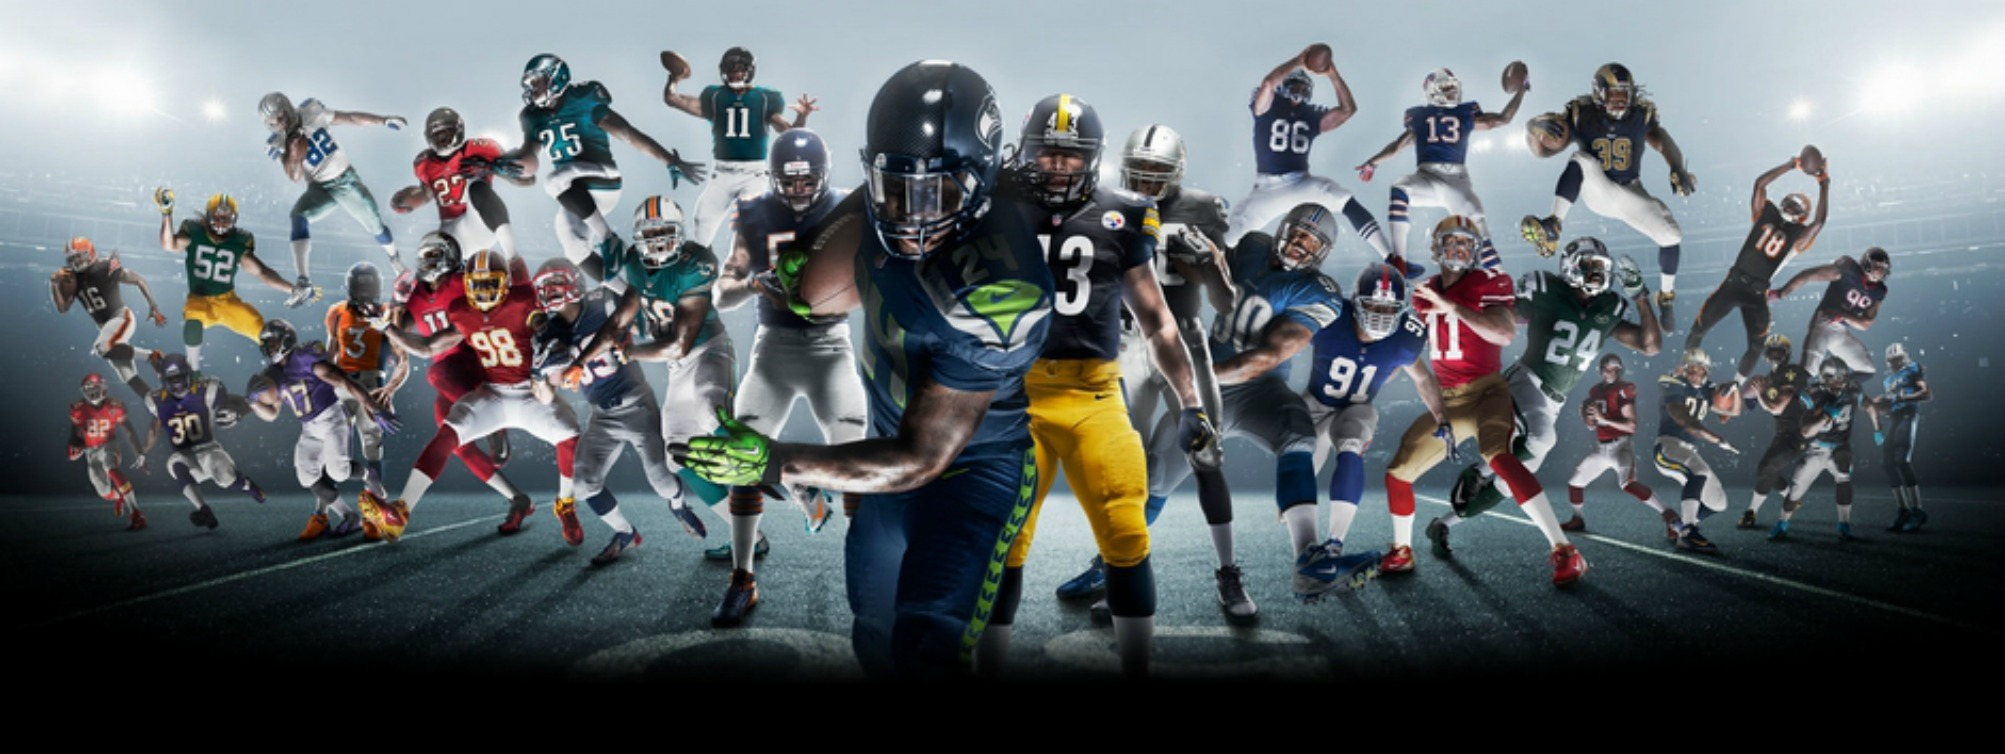 Nfl Players Wallpapers